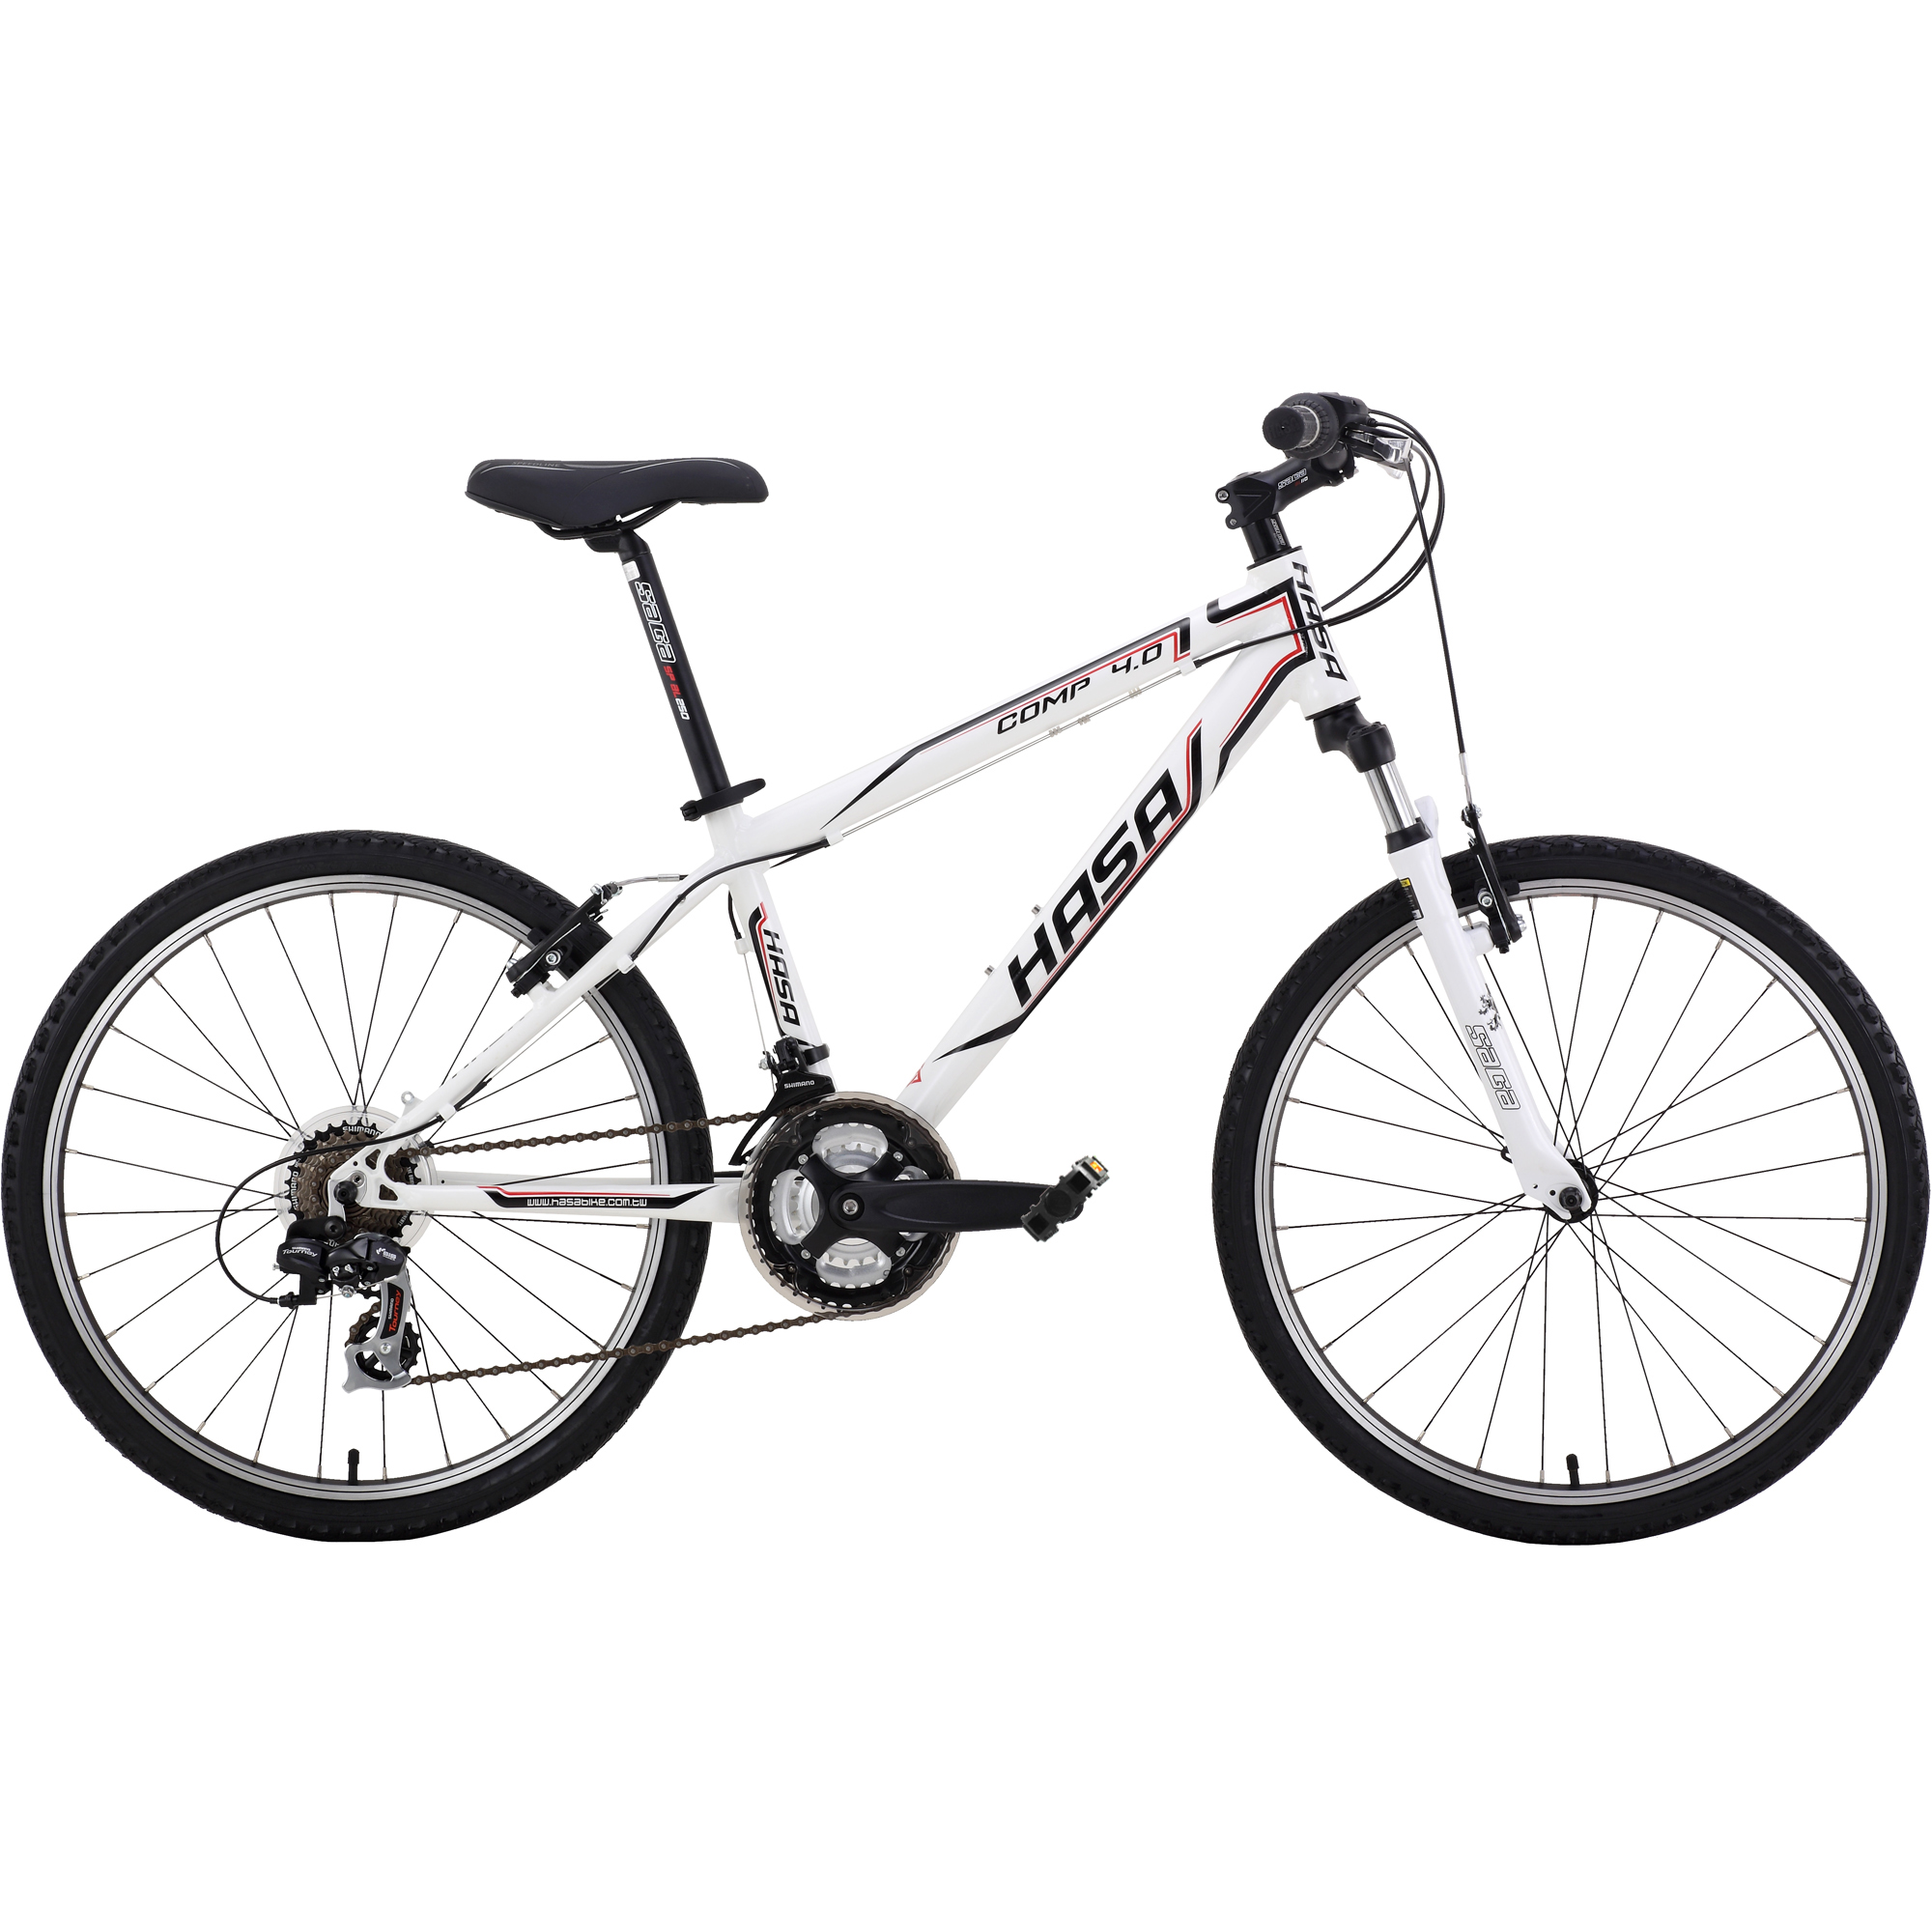 HASA Kids Mountain Bike Shimano 21 Speed 24 inch Alloy by HASA